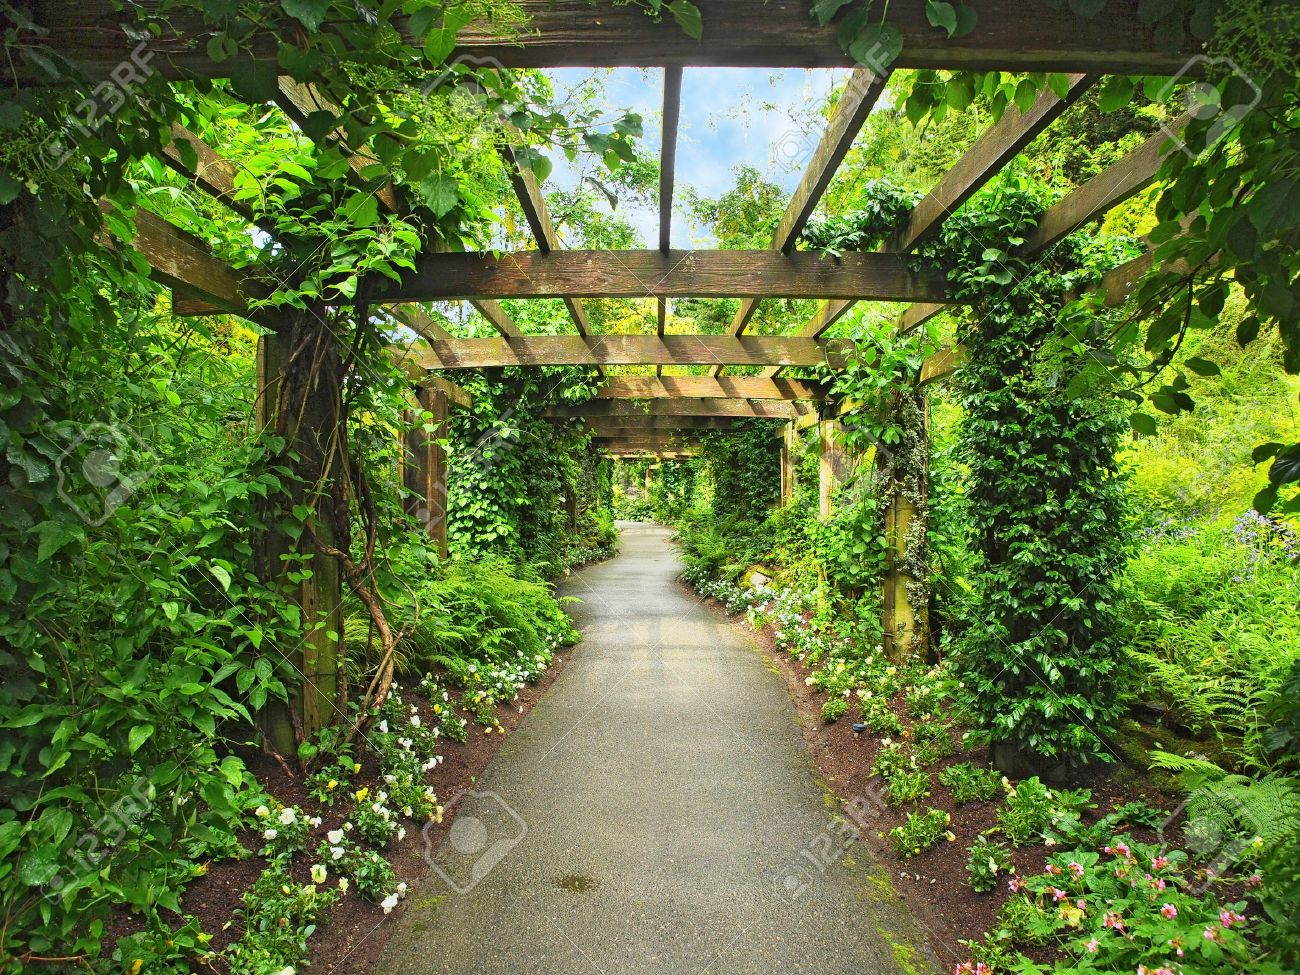 Pergola passage in the garden, surrounded by wisteria and climbing plants  Stock Photo - 14135962 - Pergola Passage In The Garden, Surrounded By Wisteria And Climbing